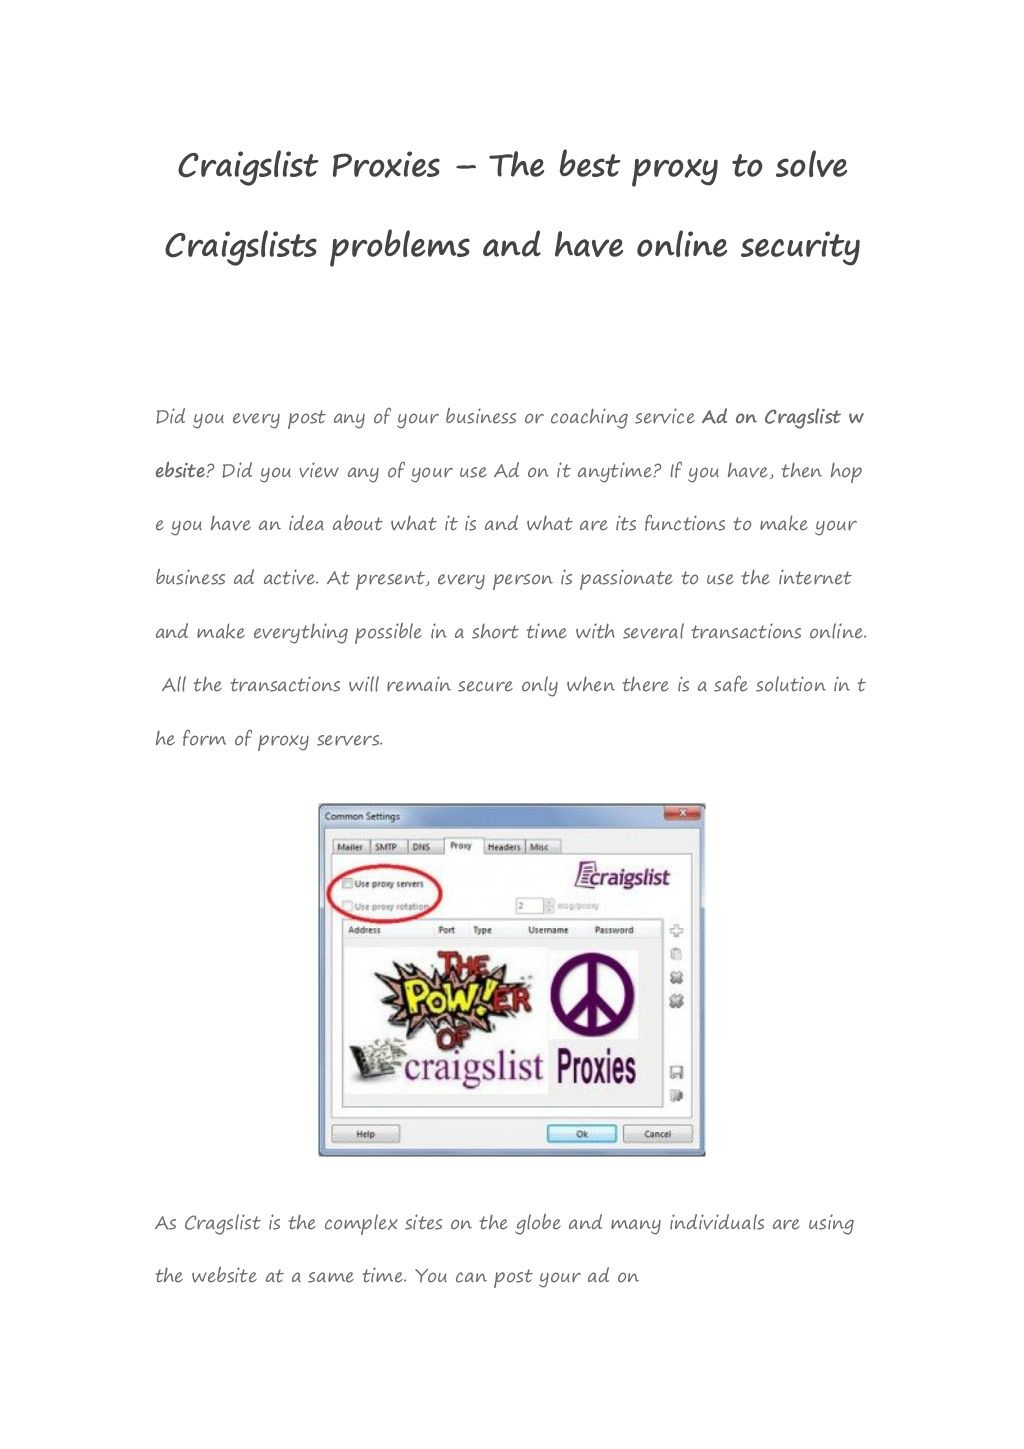 Pin by Best Paid Proxies on Other proxies | Online security, Good things